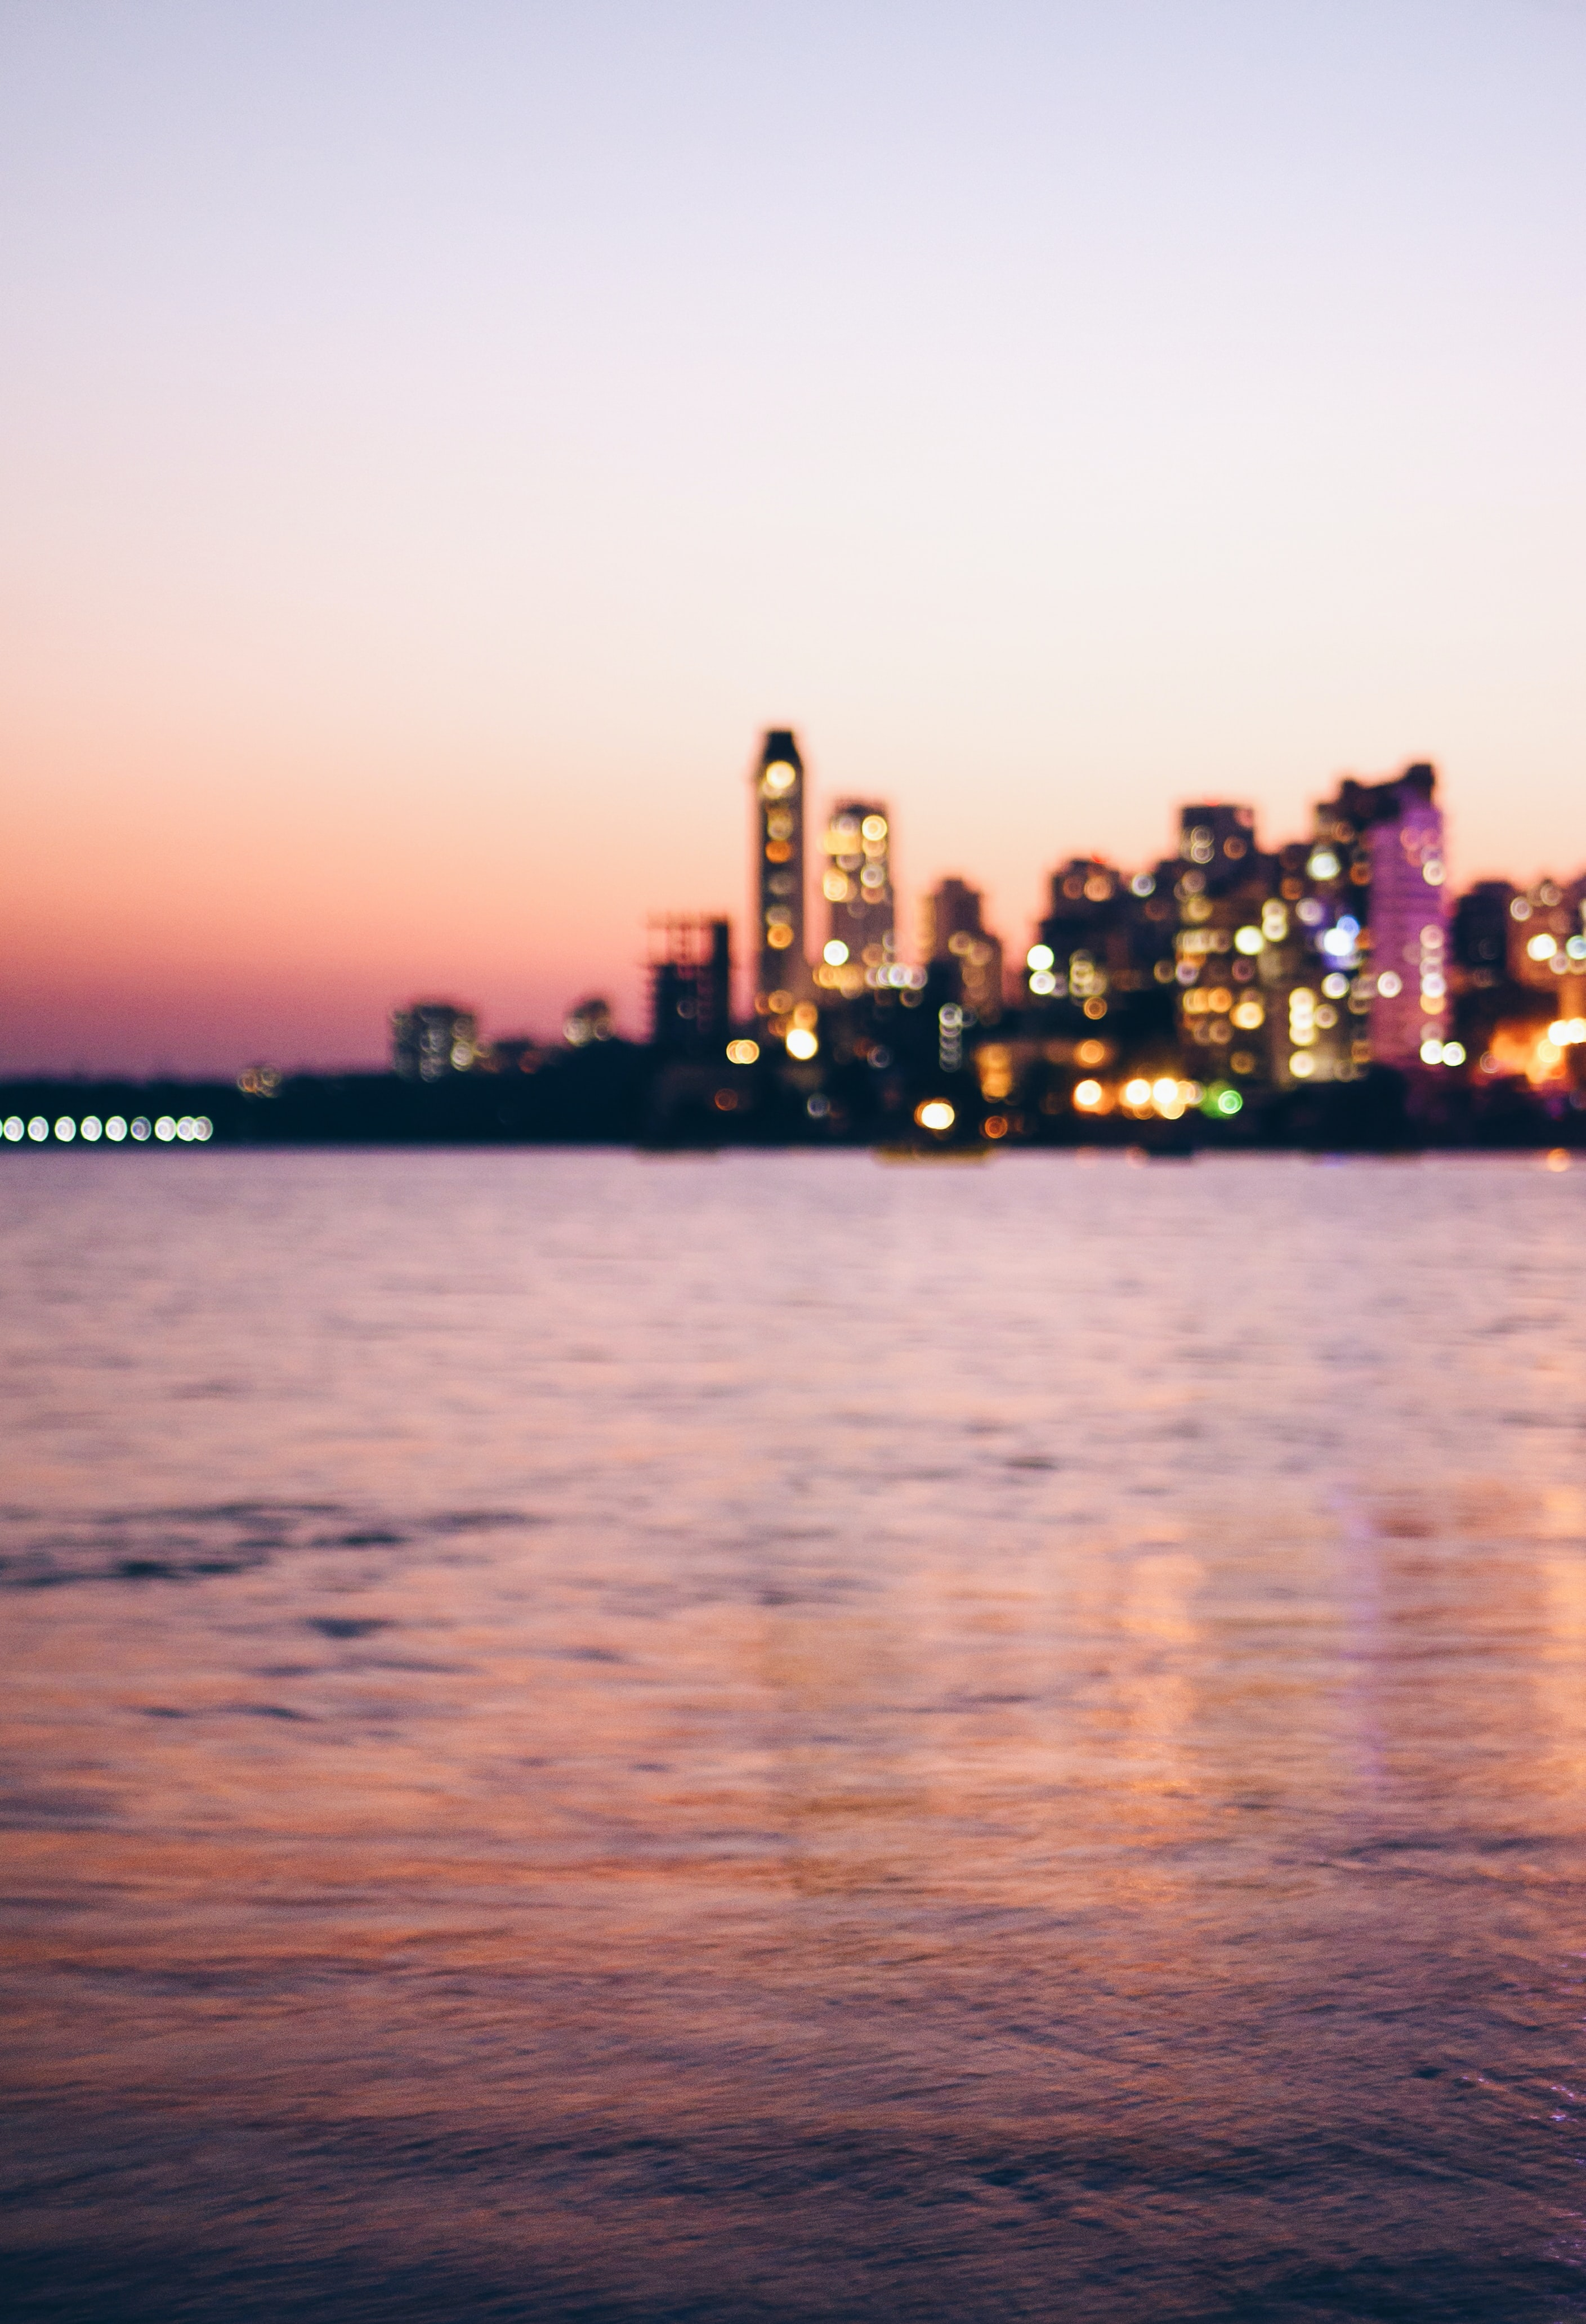 A blurry city skyline seen from a body of water on an evening